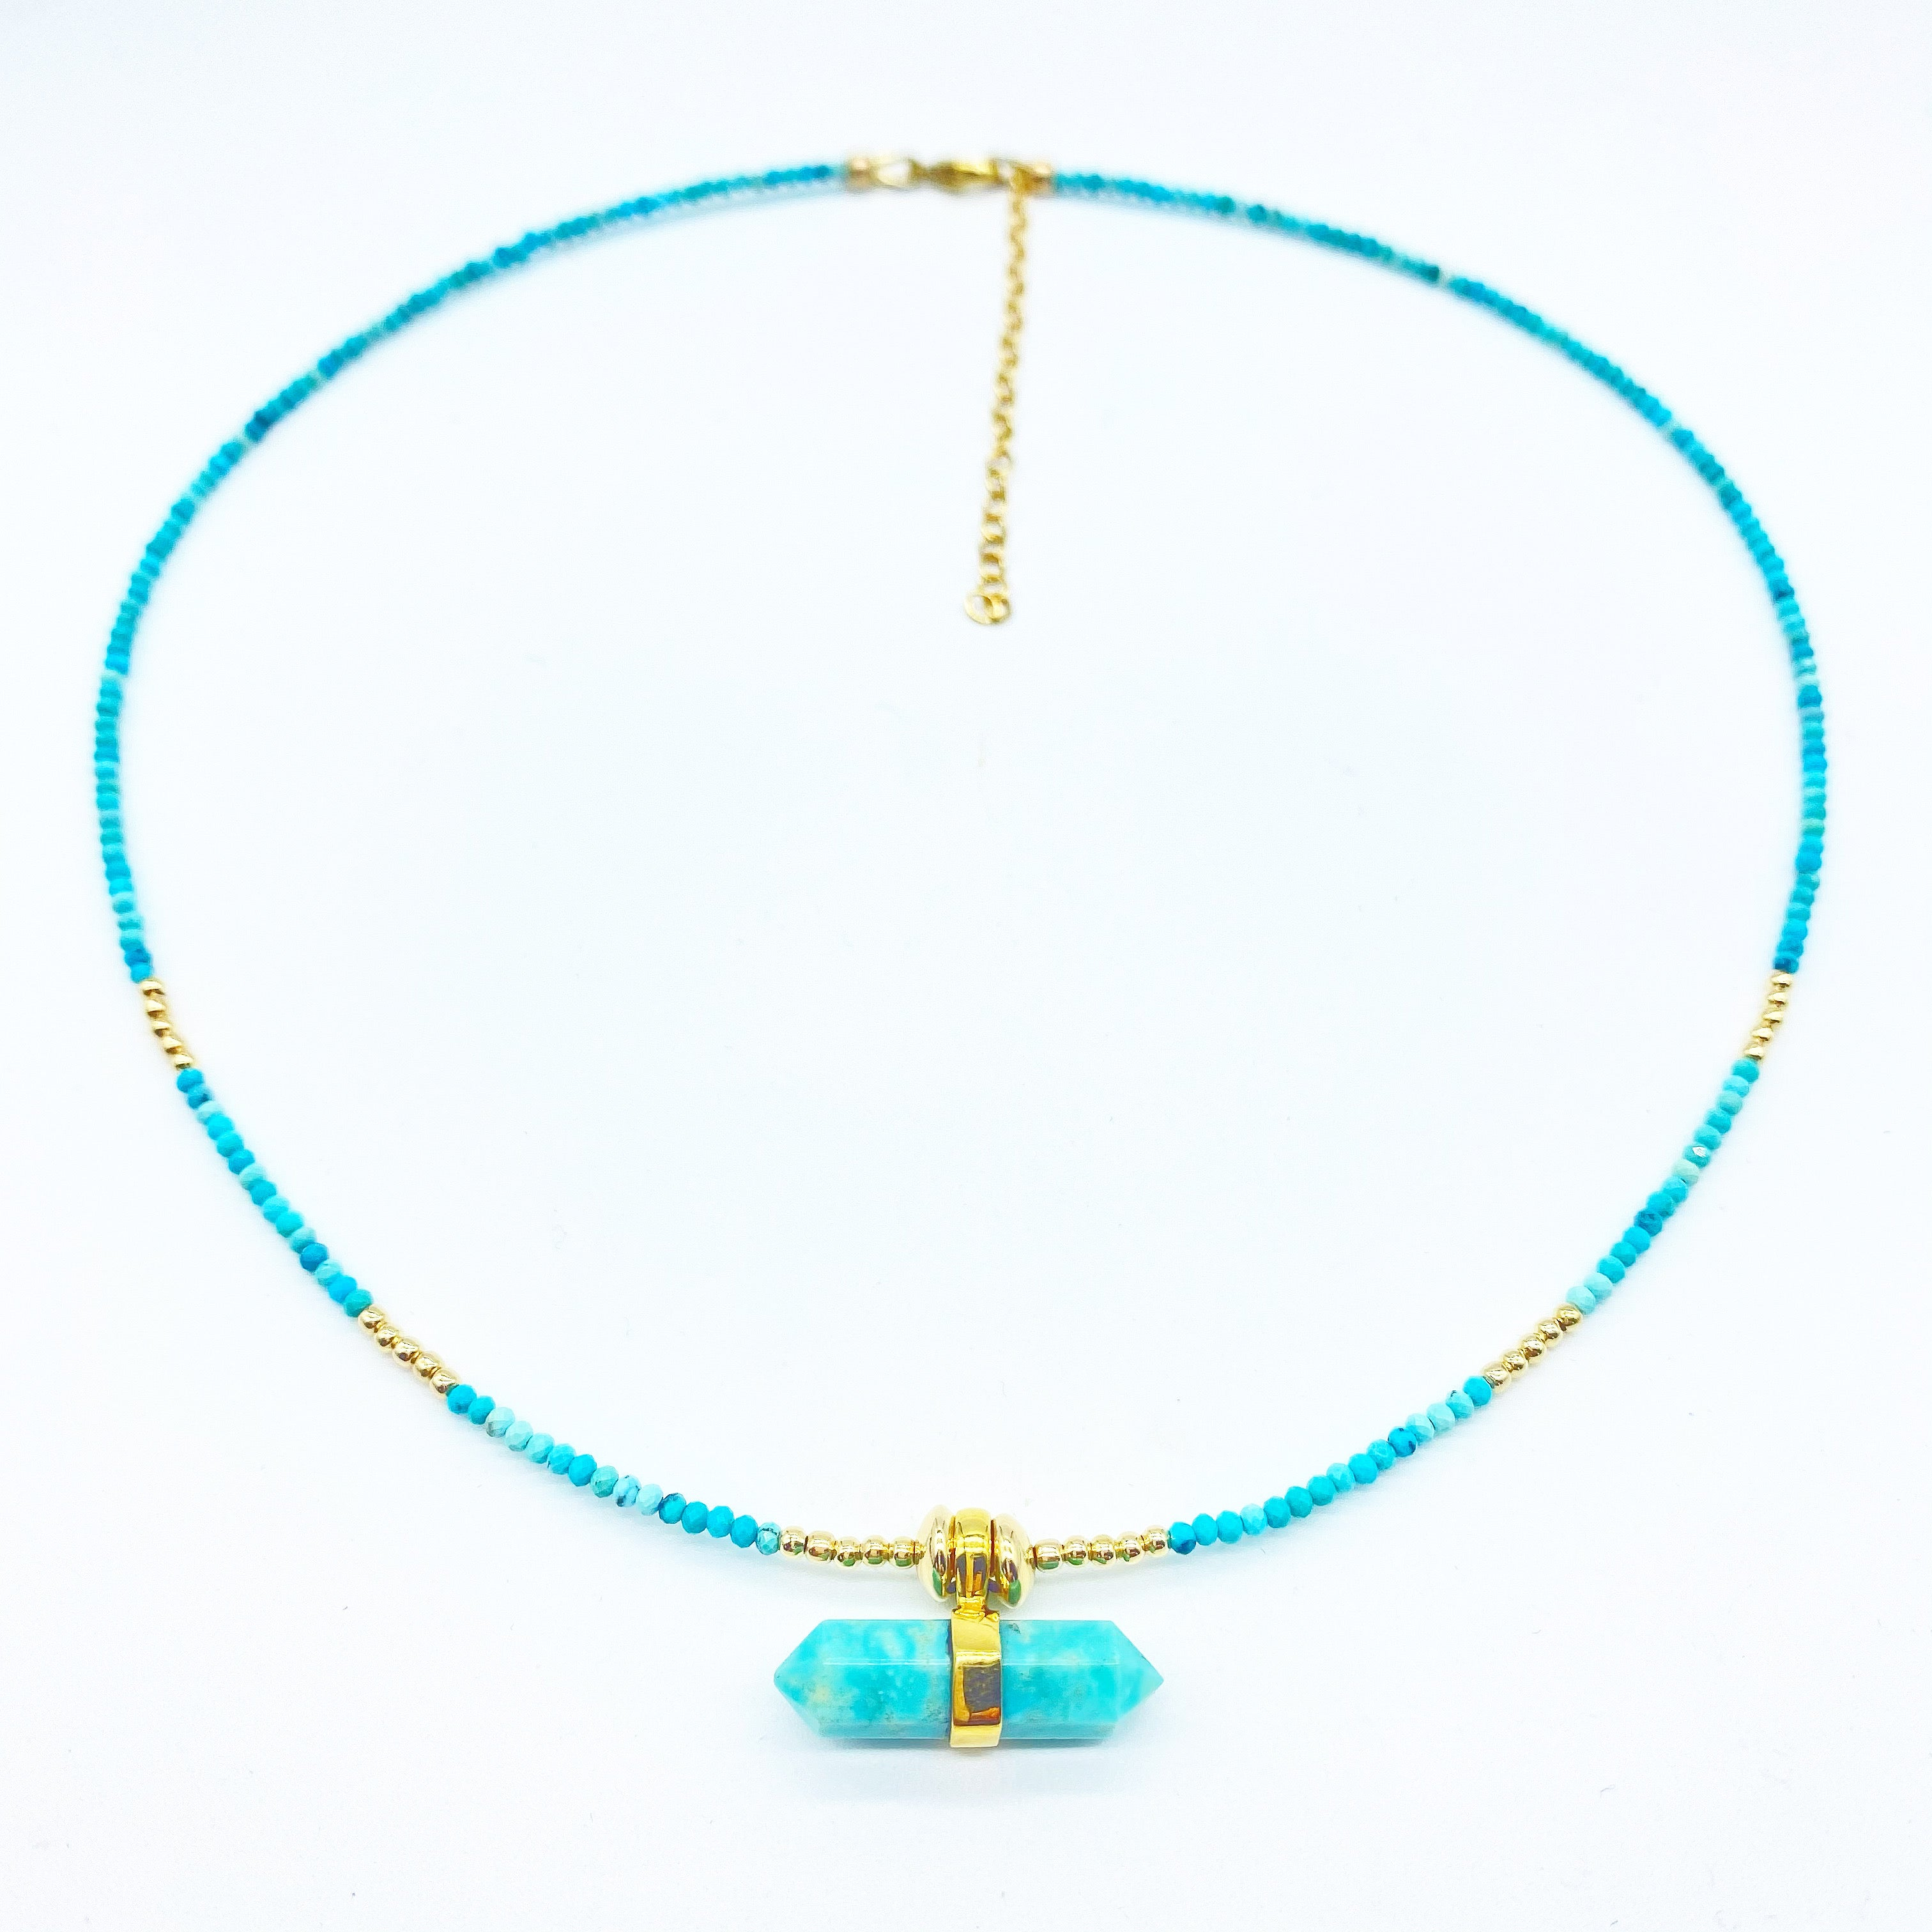 TURQUOISE PROTECTION TALISMAN NECKLACE GIFT WITH PURCHASE